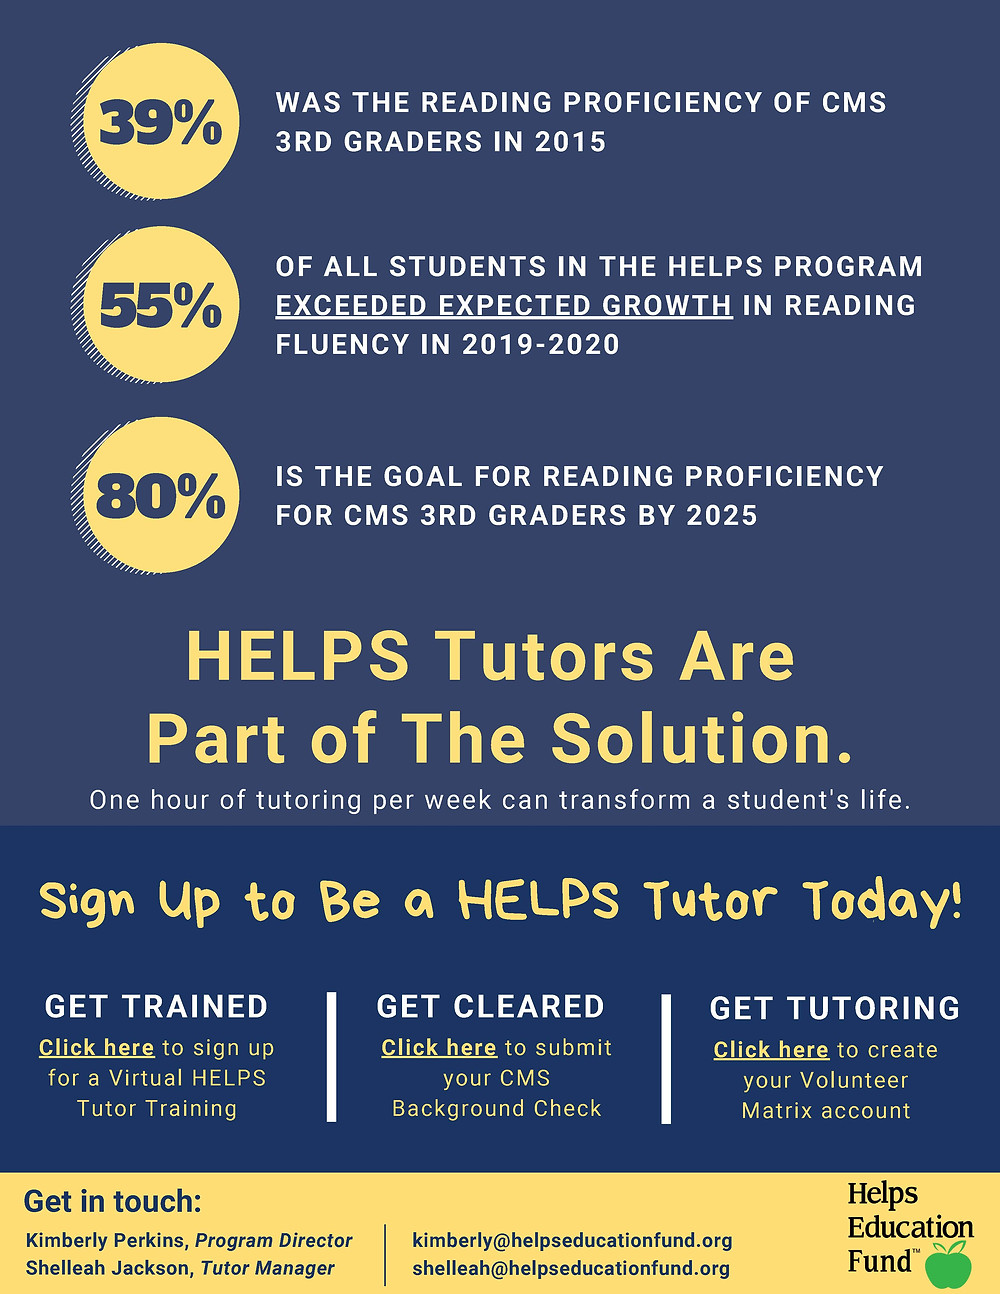 HELPS Education Fund, Become a Tutor